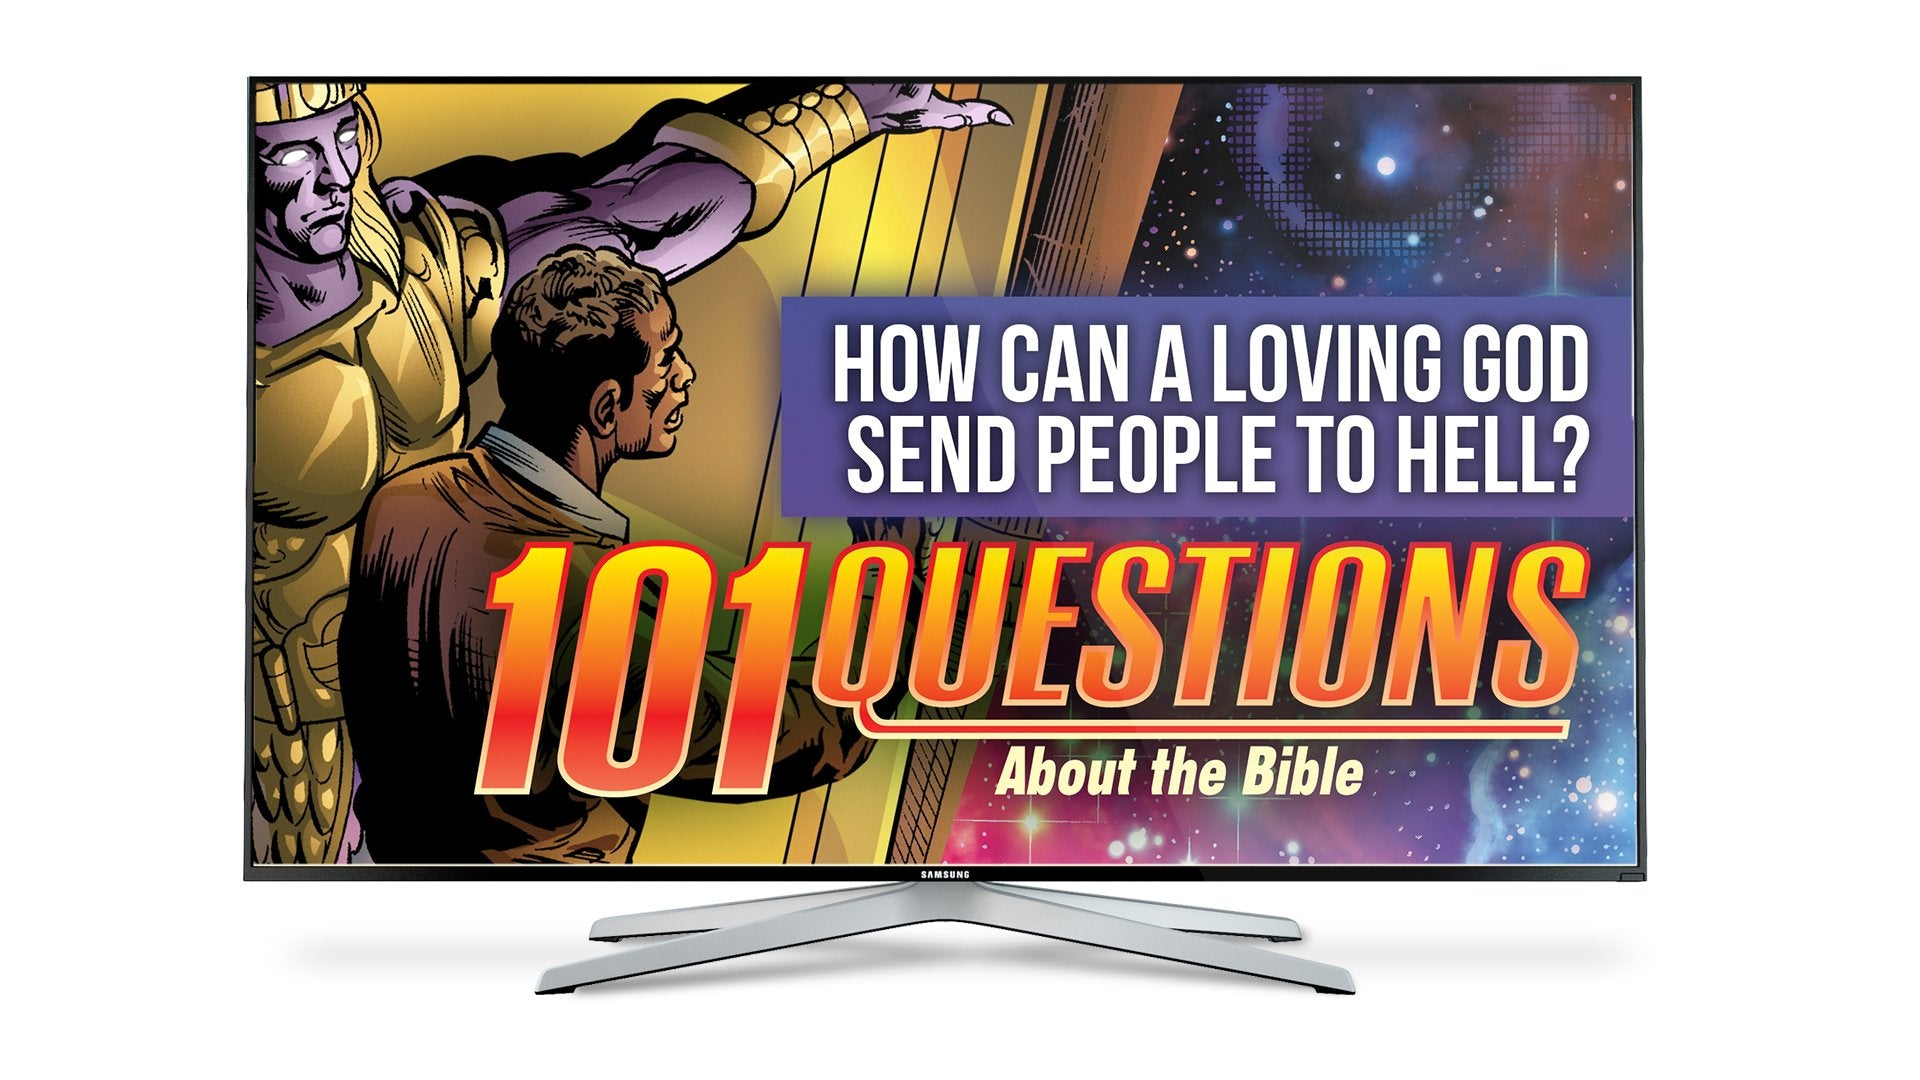 101 Questions: #12 How Can a Loving God Send People to Hell? - Kingstone Comics